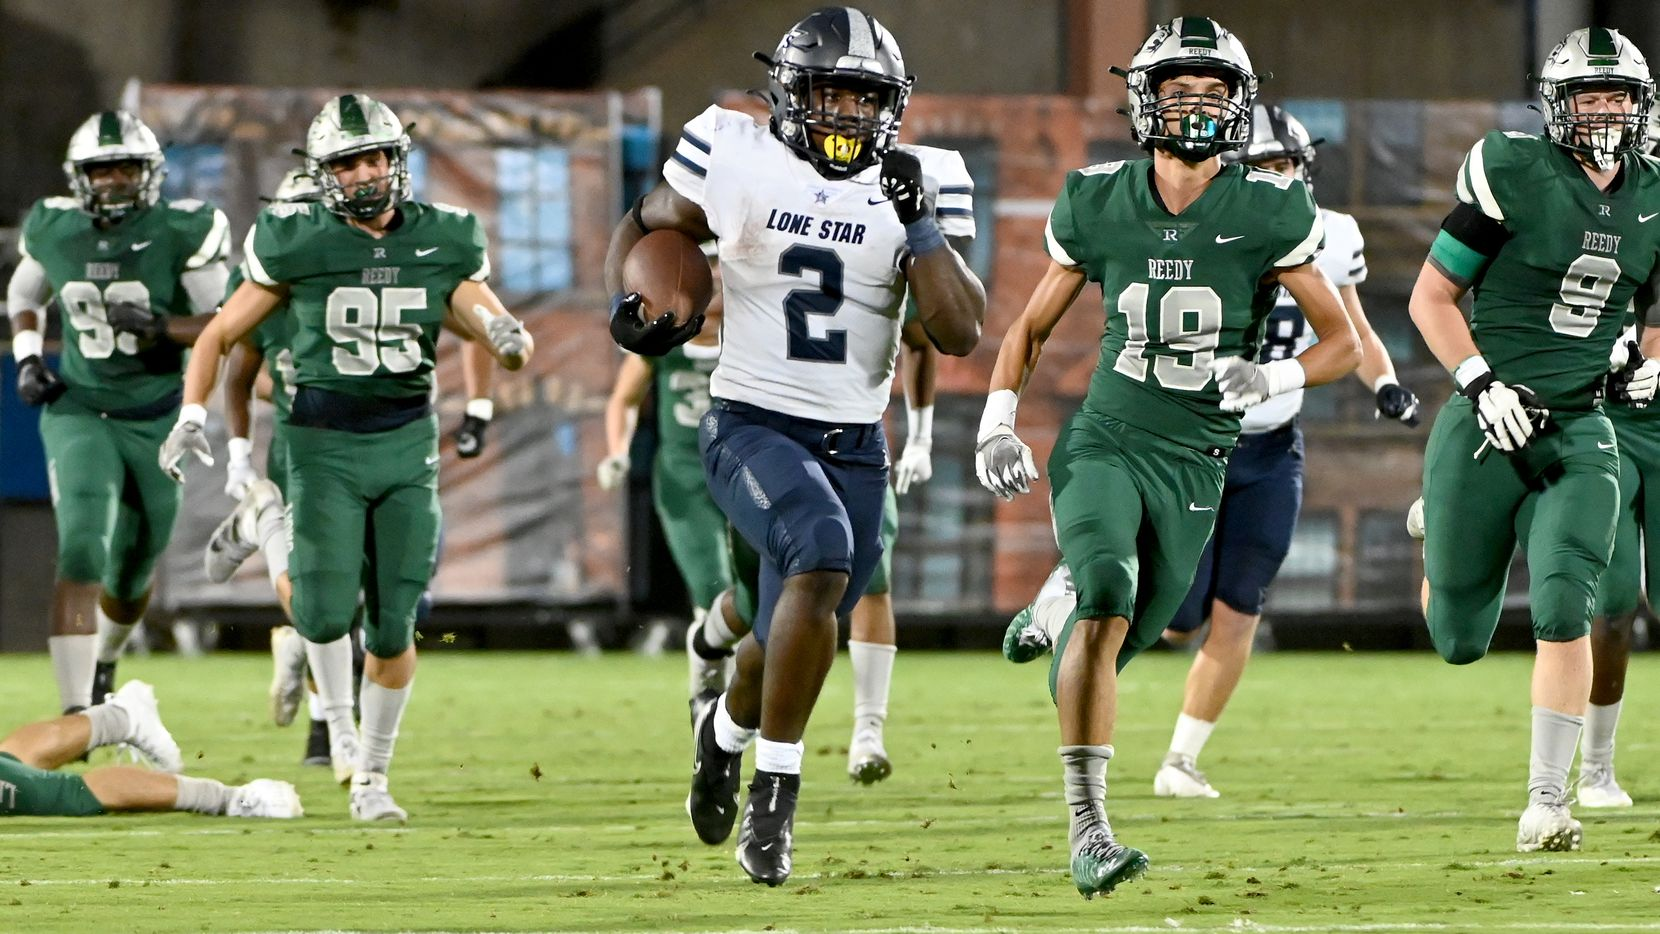 Frisco Lone Star's Ashton Jeanty (2) runs for a long touchdown in the first half of a high school football game between Frisco Reedy and Frisco Lone Star, Friday, Sept. 30, 2021, in Frisco, Texas.